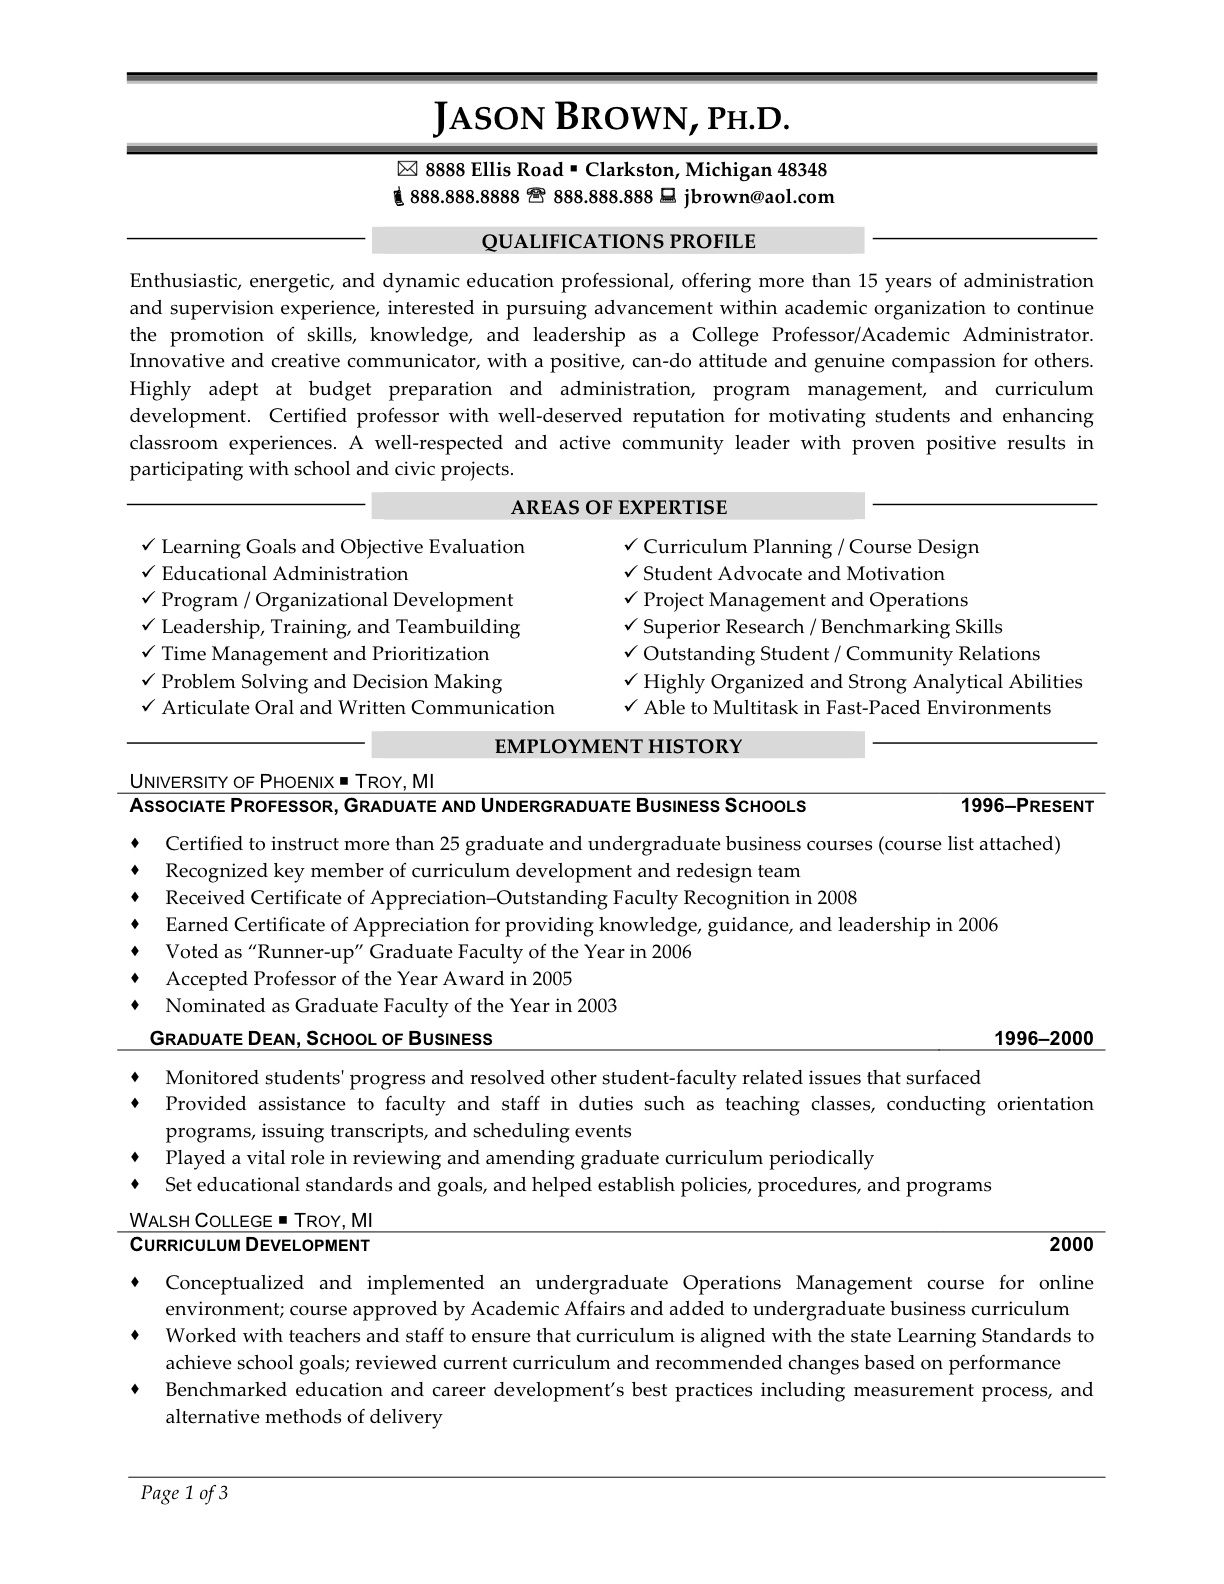 sample phd resume for industry sample phd resume for industry engineering phd resume sample phd resume - Undergraduate Resume Sample